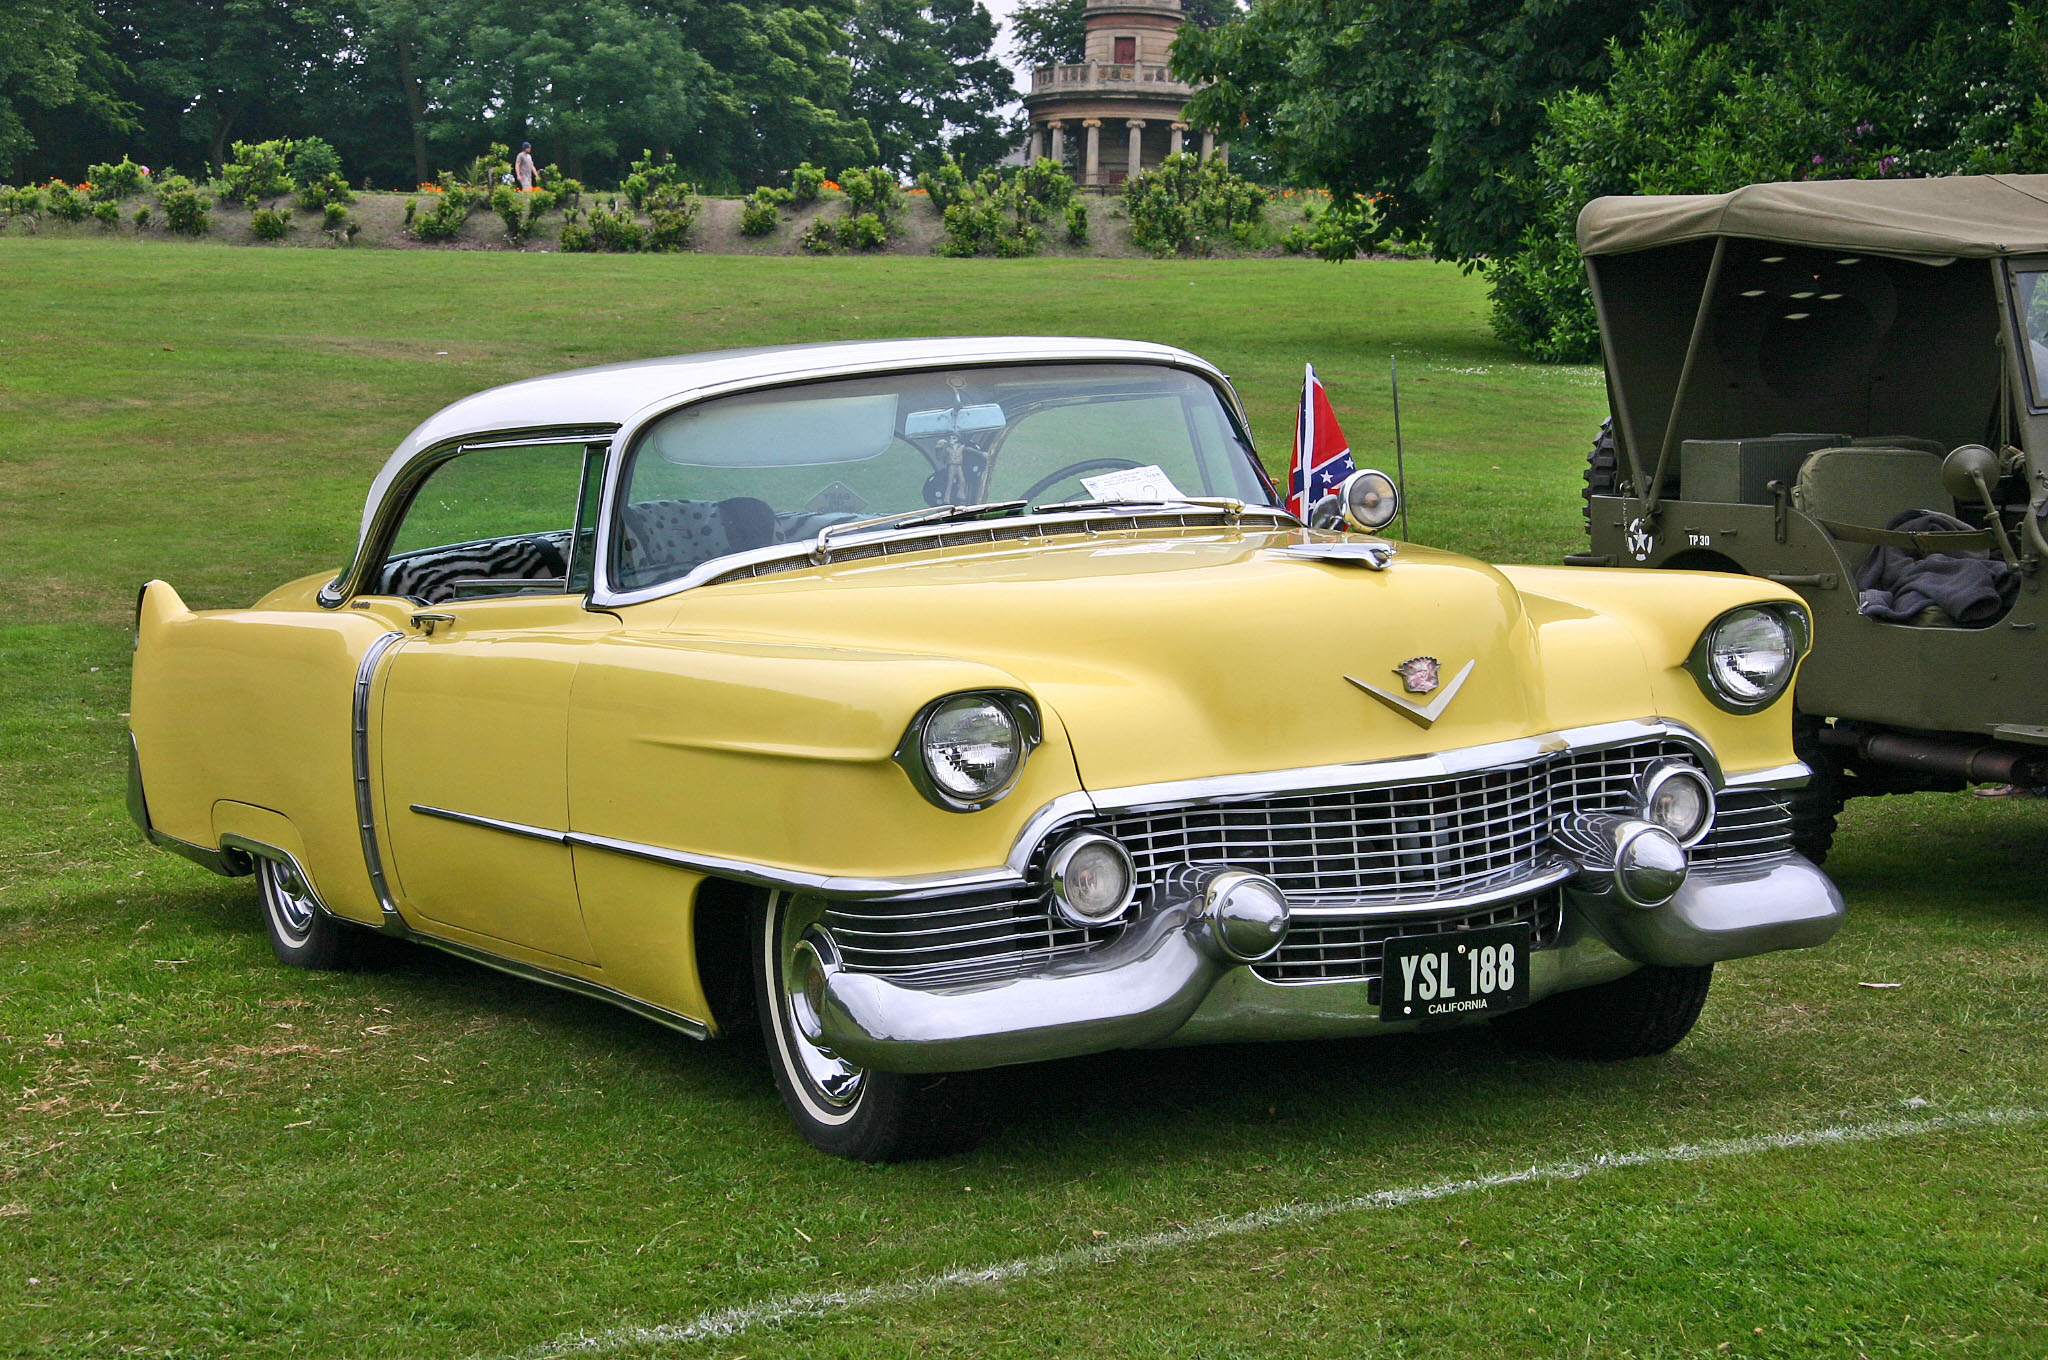 File:Cadillac Coupe de Ville 1954 front.jpg - Wikimedia Commons